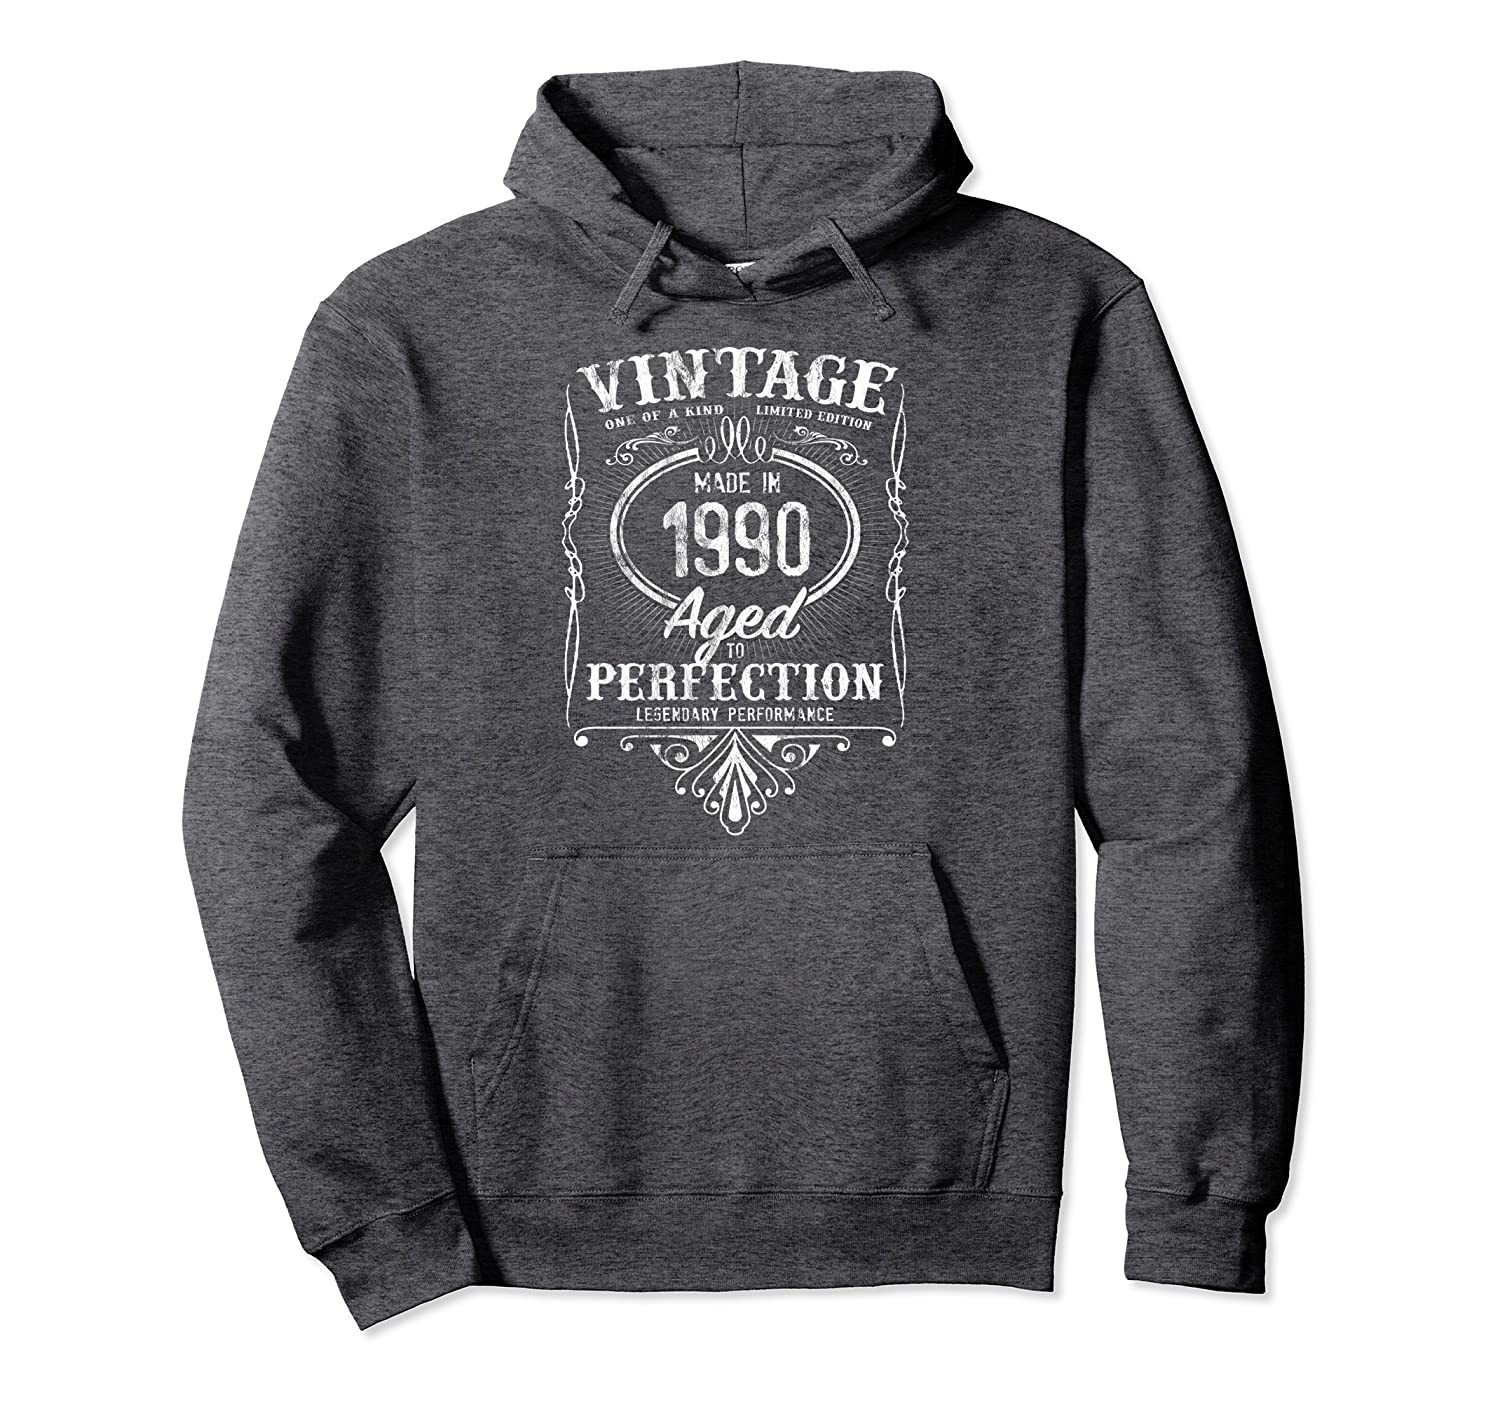 Vintage Made In 1990 Classic 29th Birthday Aged Perfection Pullover Hoodie